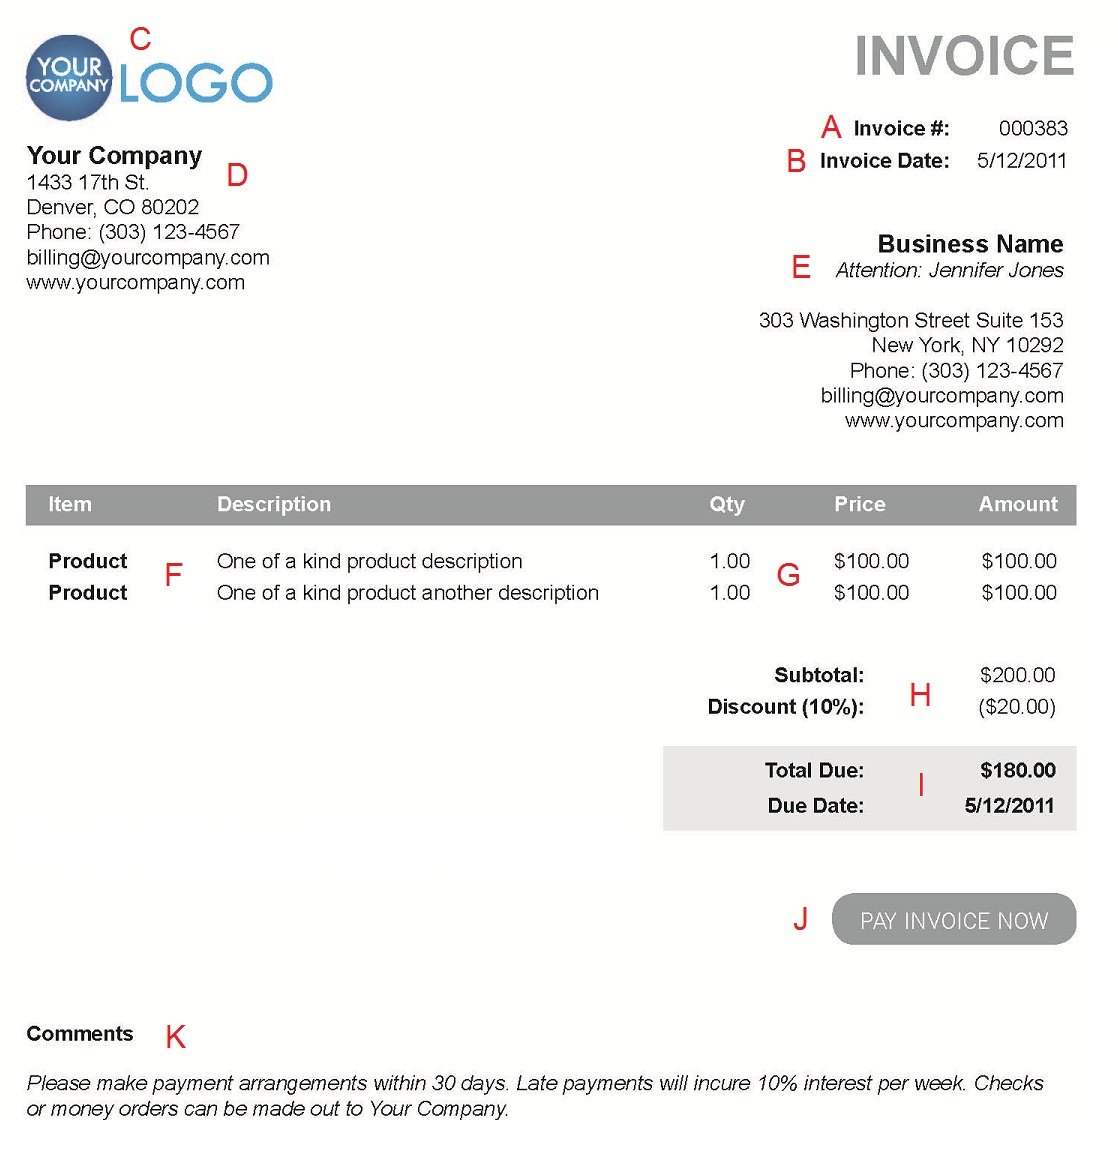 Theologygeekblogus  Marvelous The  Different Sections Of An Electronic Payment Invoice With Heavenly A  With Delightful Vat Invoice Example Also How To Create A Simple Invoice In Addition Make Invoice Online Free And Purchase Invoices As Well As Chevy Invoice Price Additionally Make Invoices Online From Paysimplecom With Theologygeekblogus  Heavenly The  Different Sections Of An Electronic Payment Invoice With Delightful A  And Marvelous Vat Invoice Example Also How To Create A Simple Invoice In Addition Make Invoice Online Free From Paysimplecom